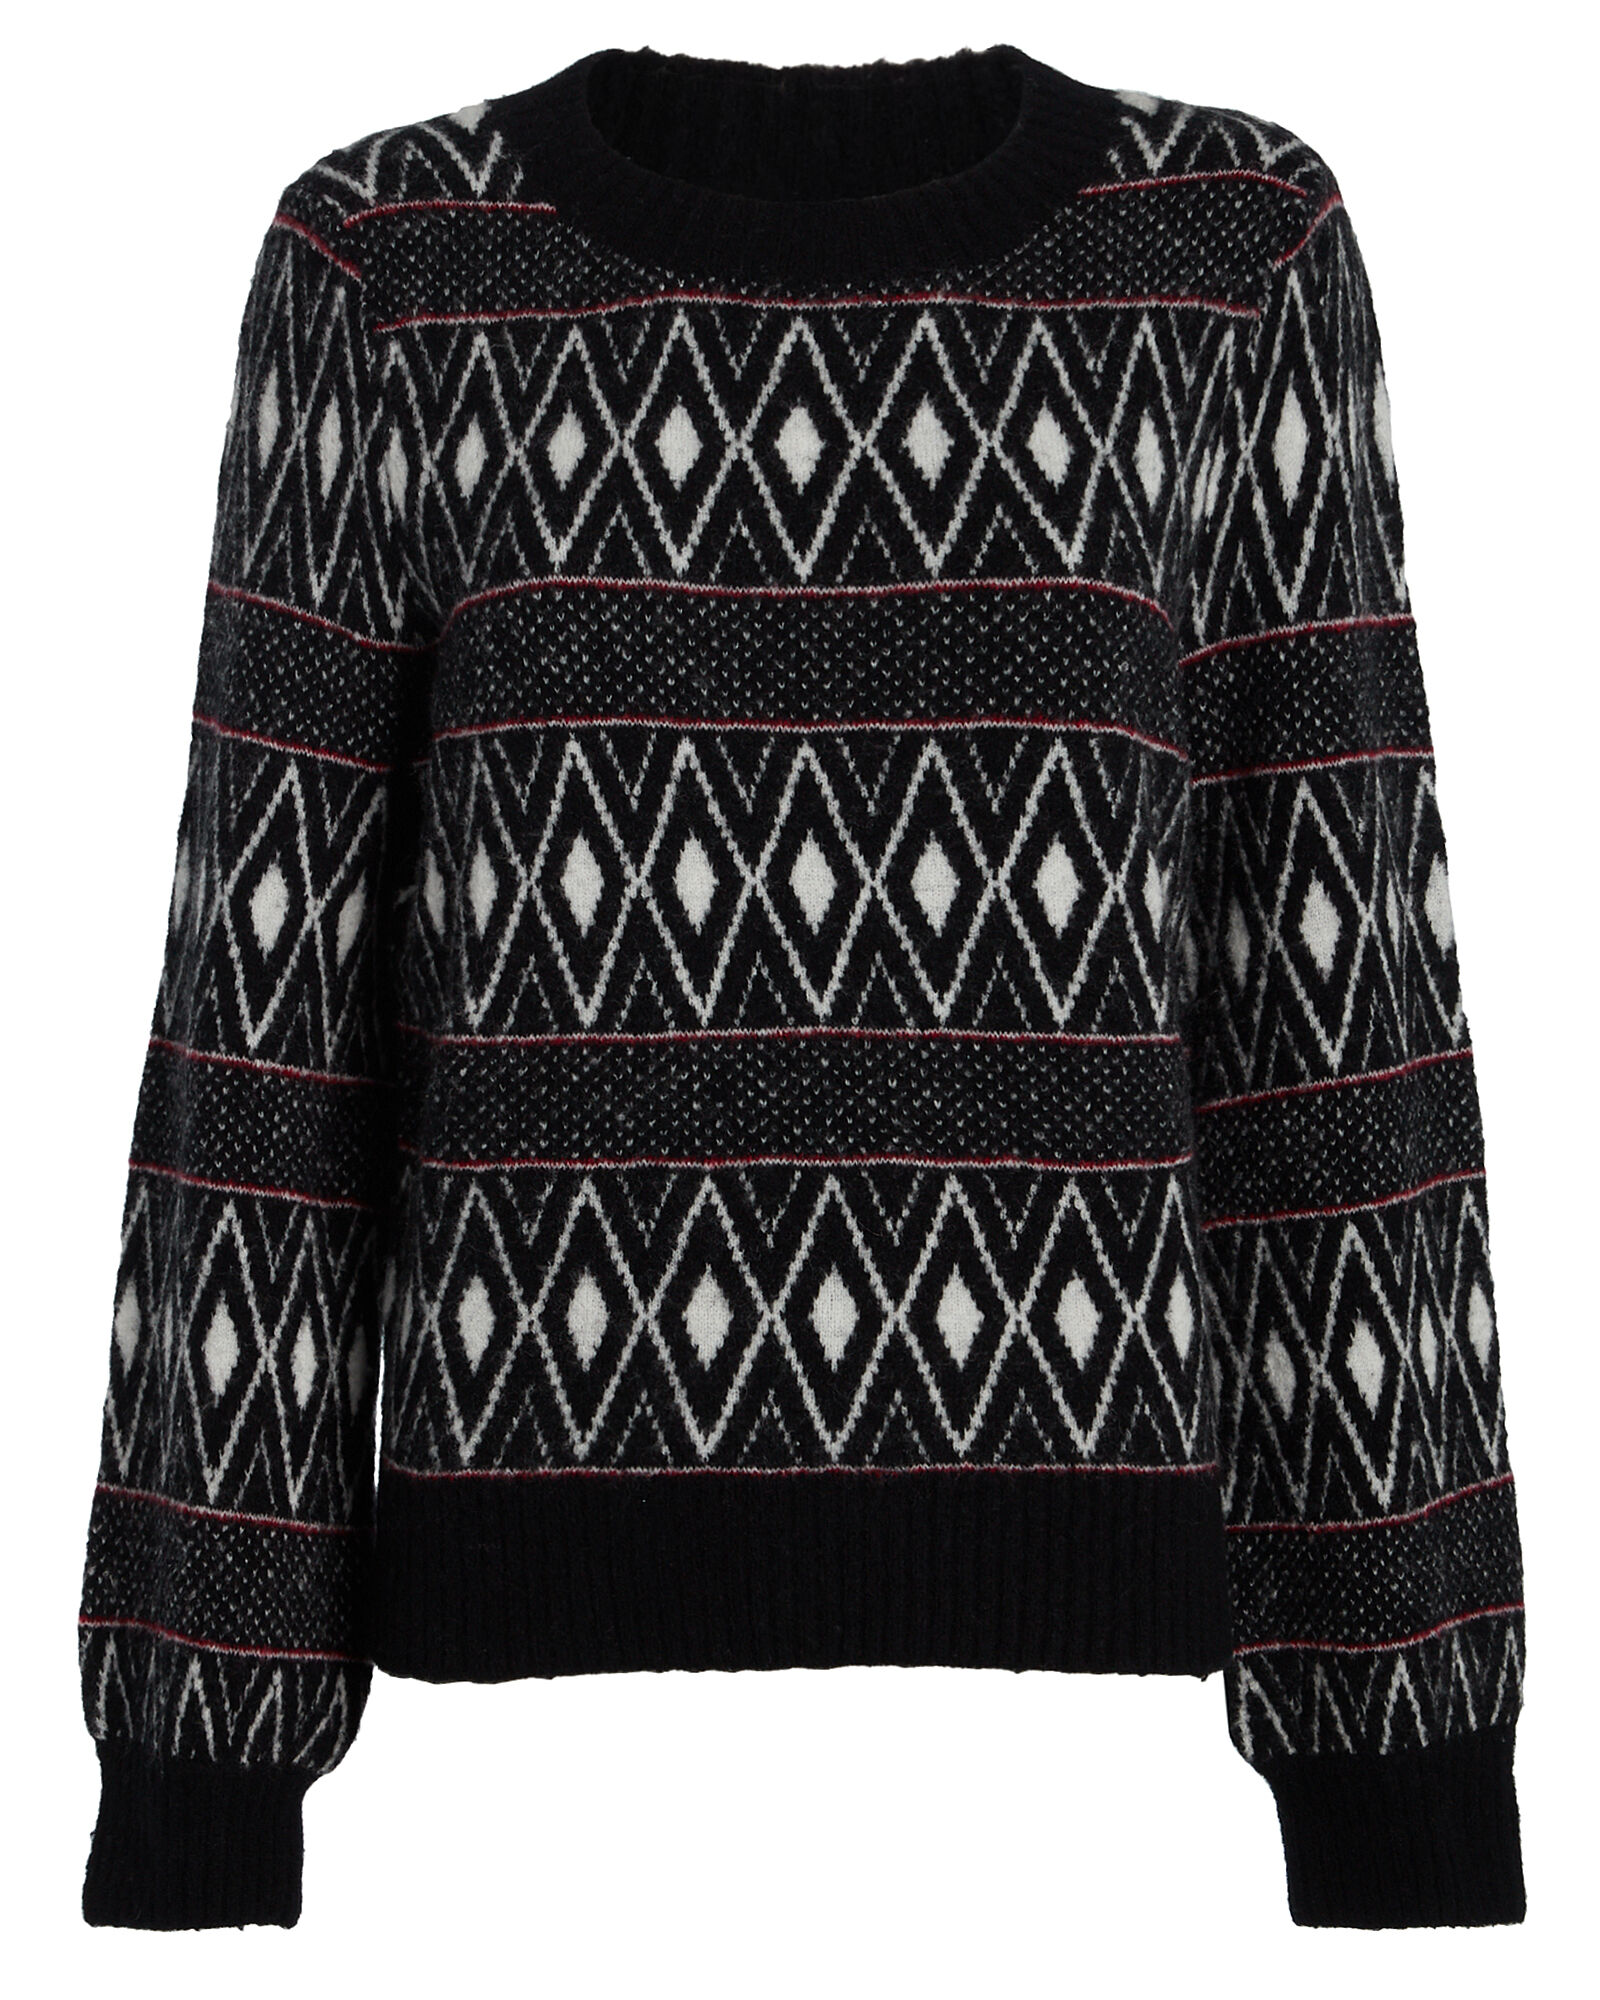 Ana Striped Fair Isle Sweater, BLACK/WHITE, hi-res